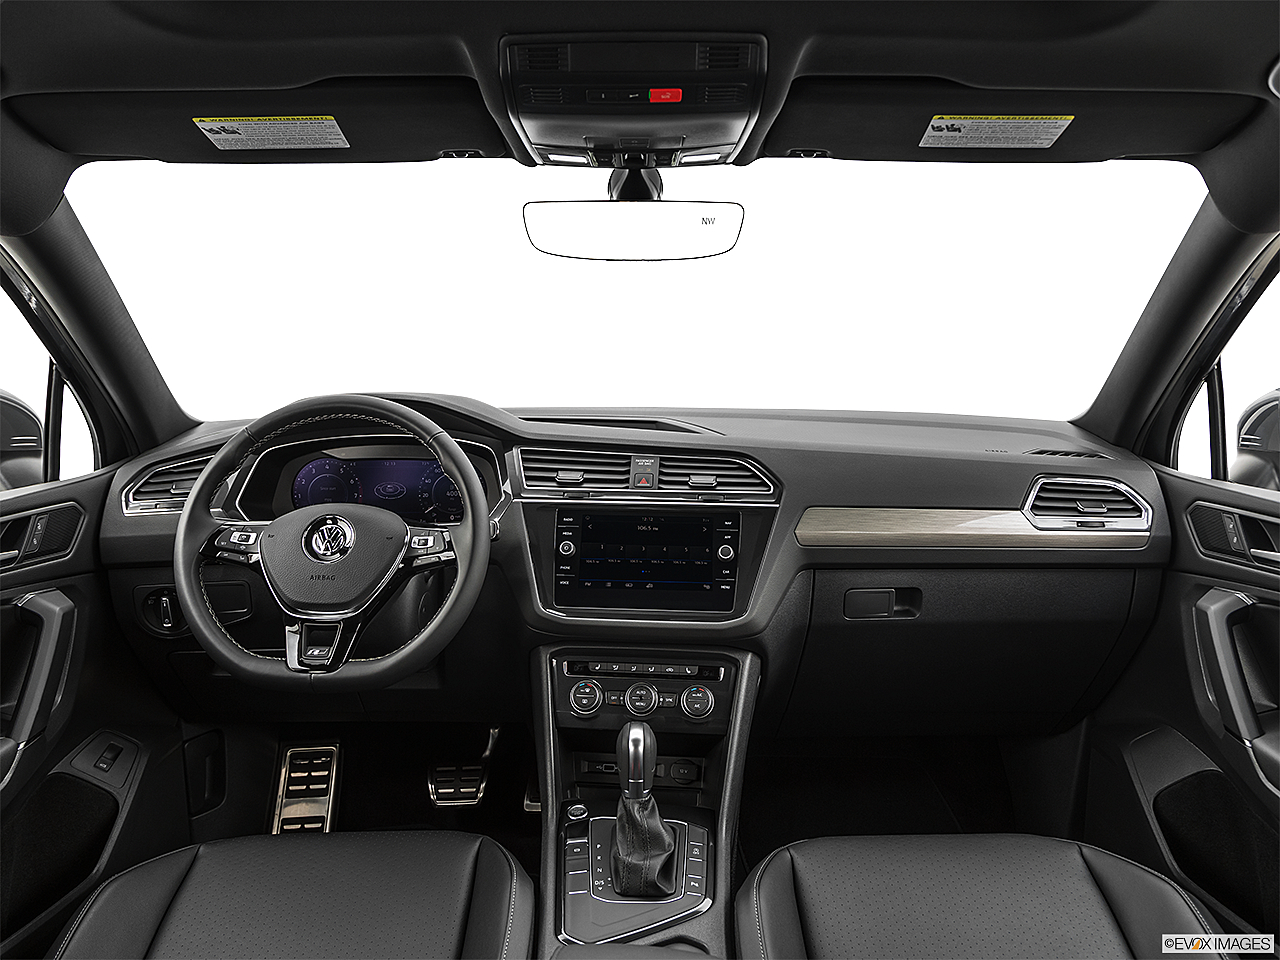 2019 Volkswagen Tiguan SEL R-Line, centered wide dash shot